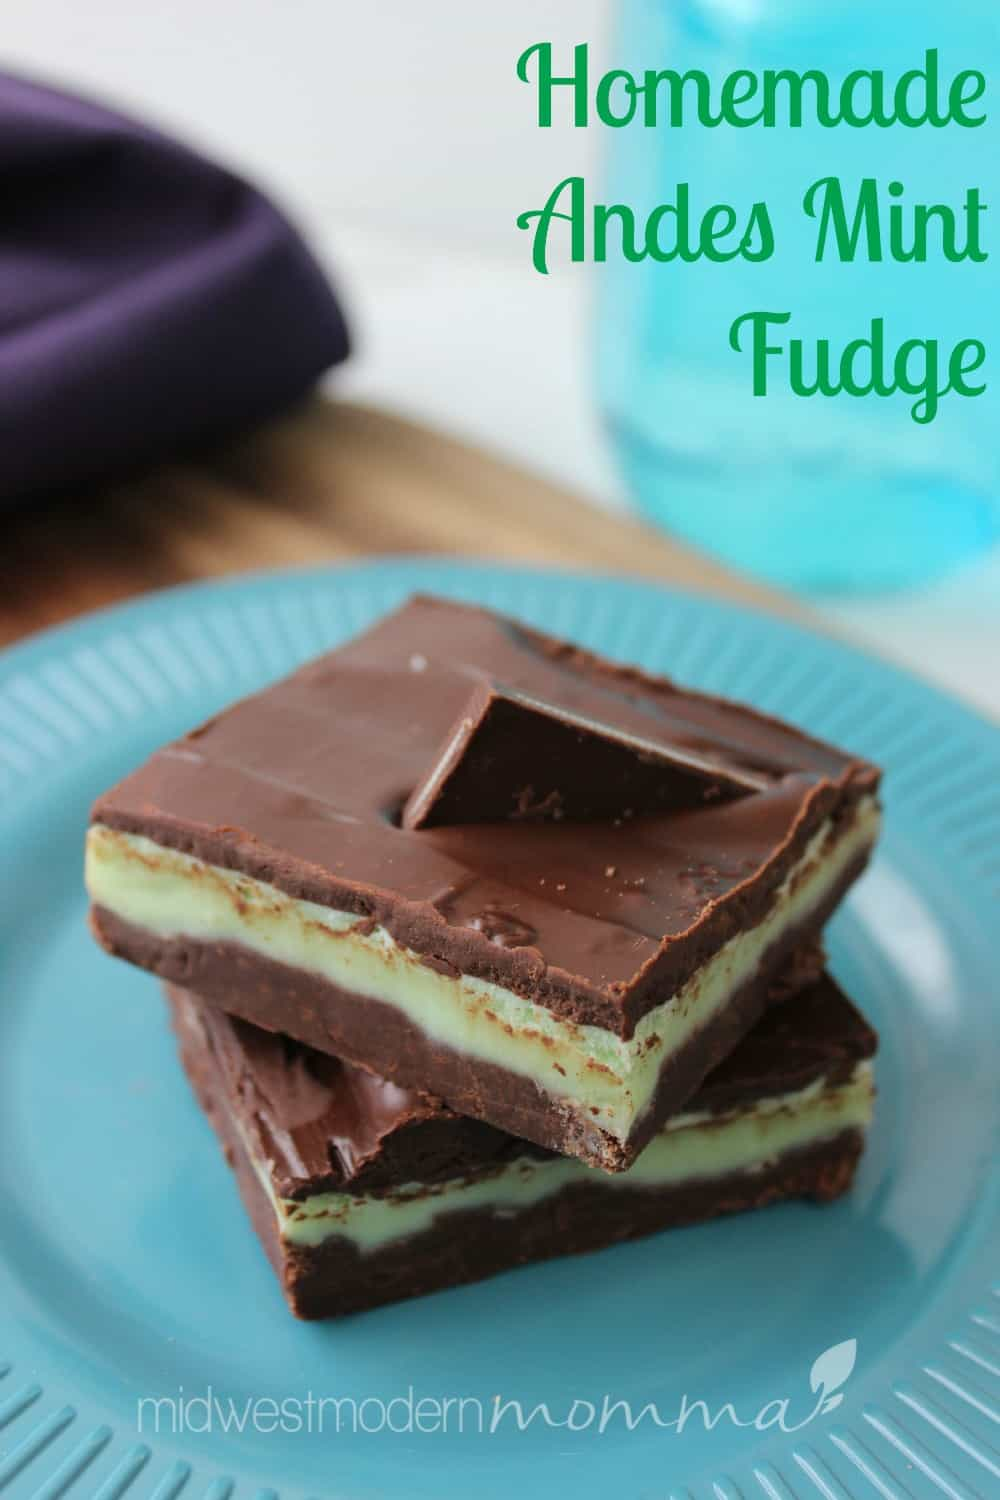 Homemade Andes Mint Chocolate Fudge Recipe